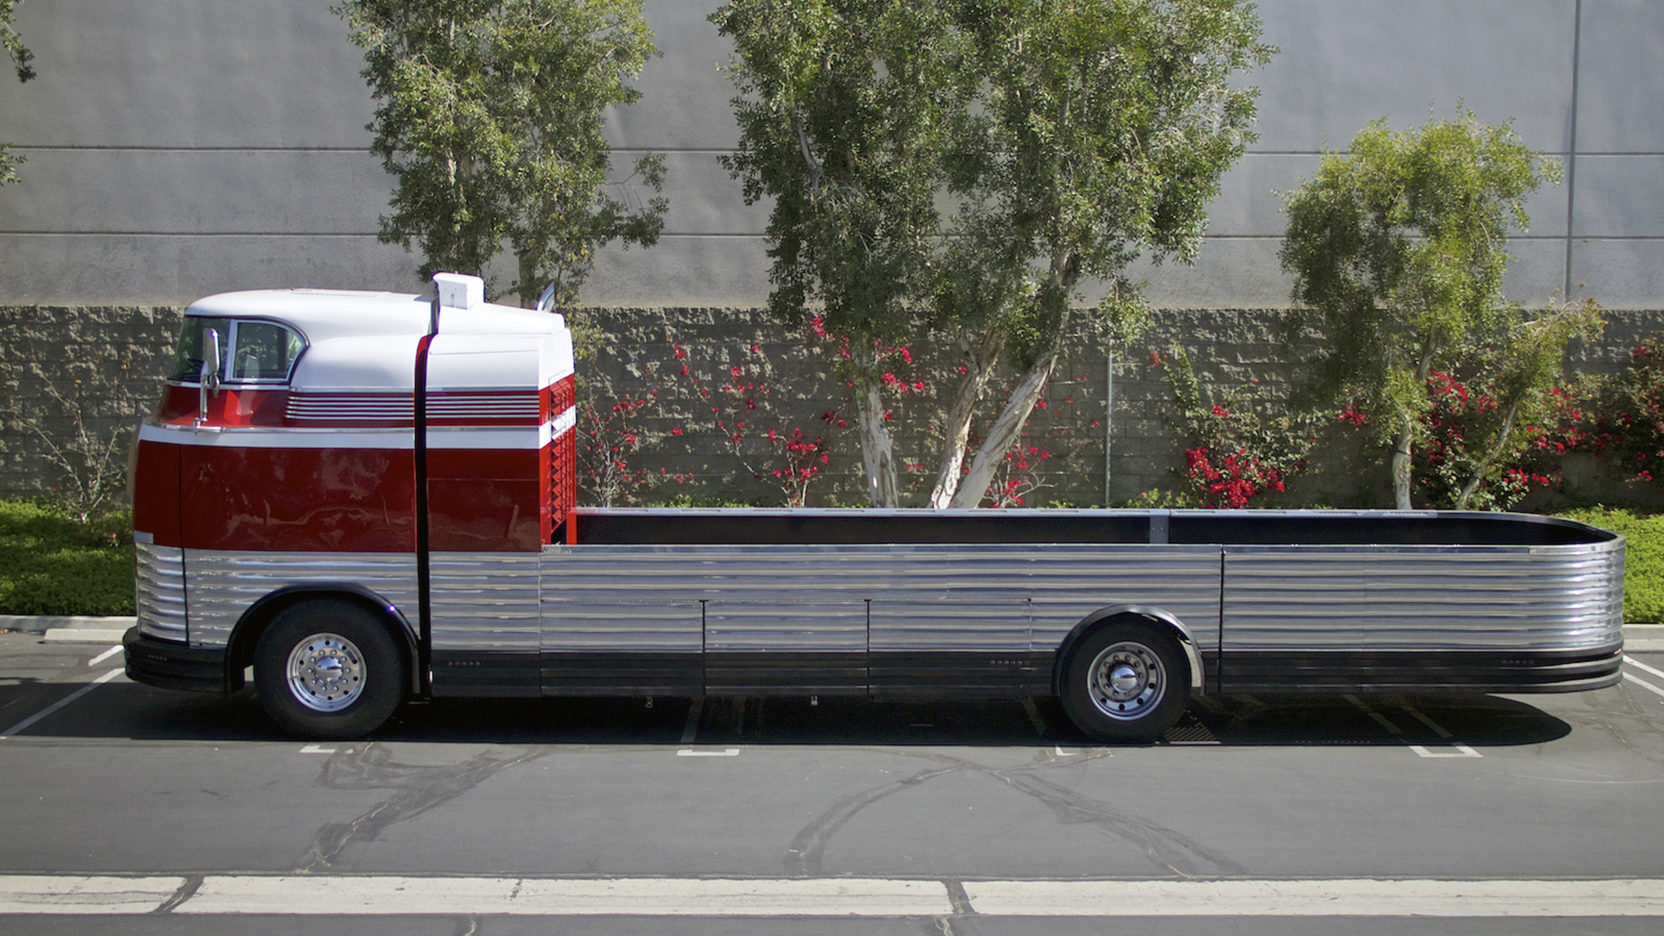 The modified Futurliner number 5 is now a very practical classic vehicle hauler with its flatbed and diesel engine.